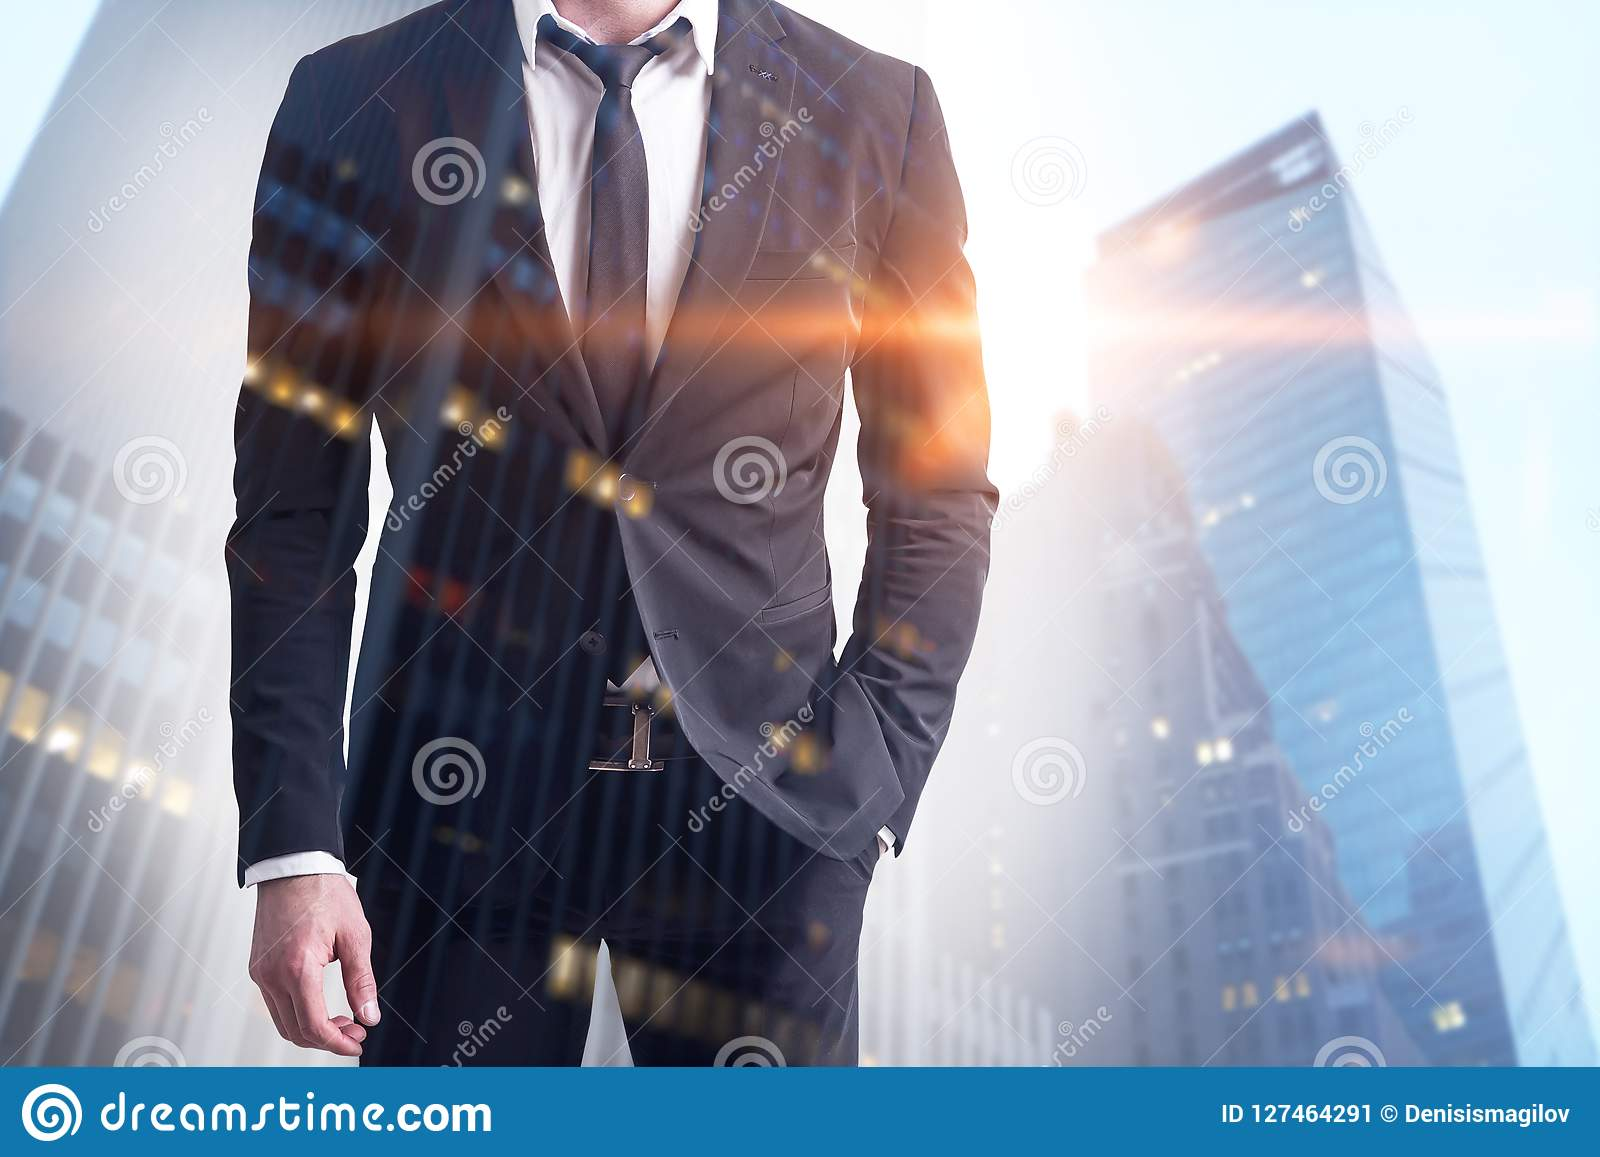 role of financial manager in modern business